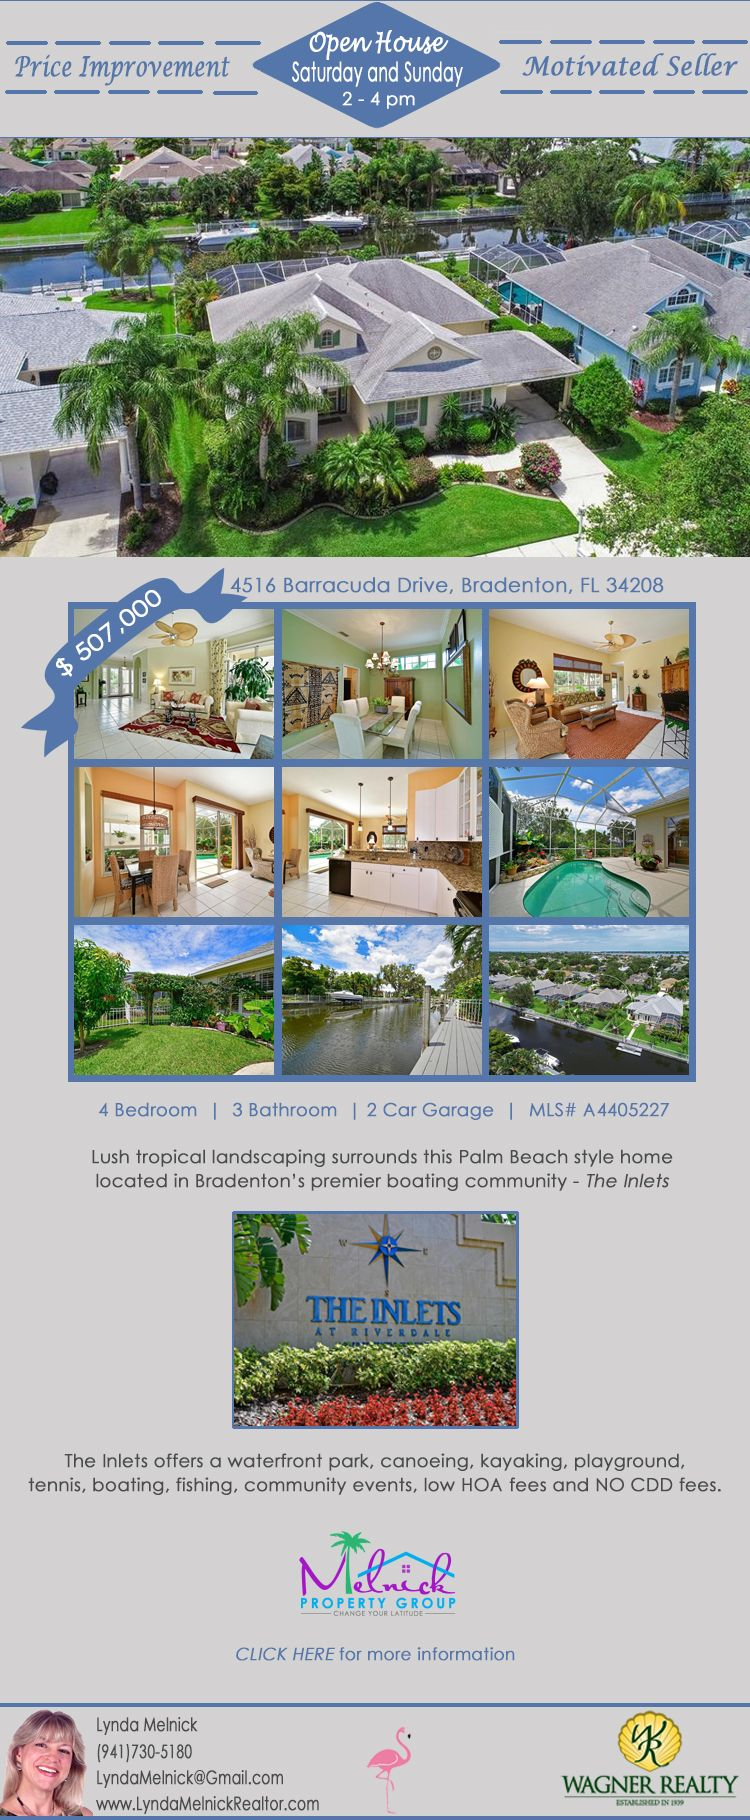 Open House this Saturday and Sunday, September 1st & 2nd